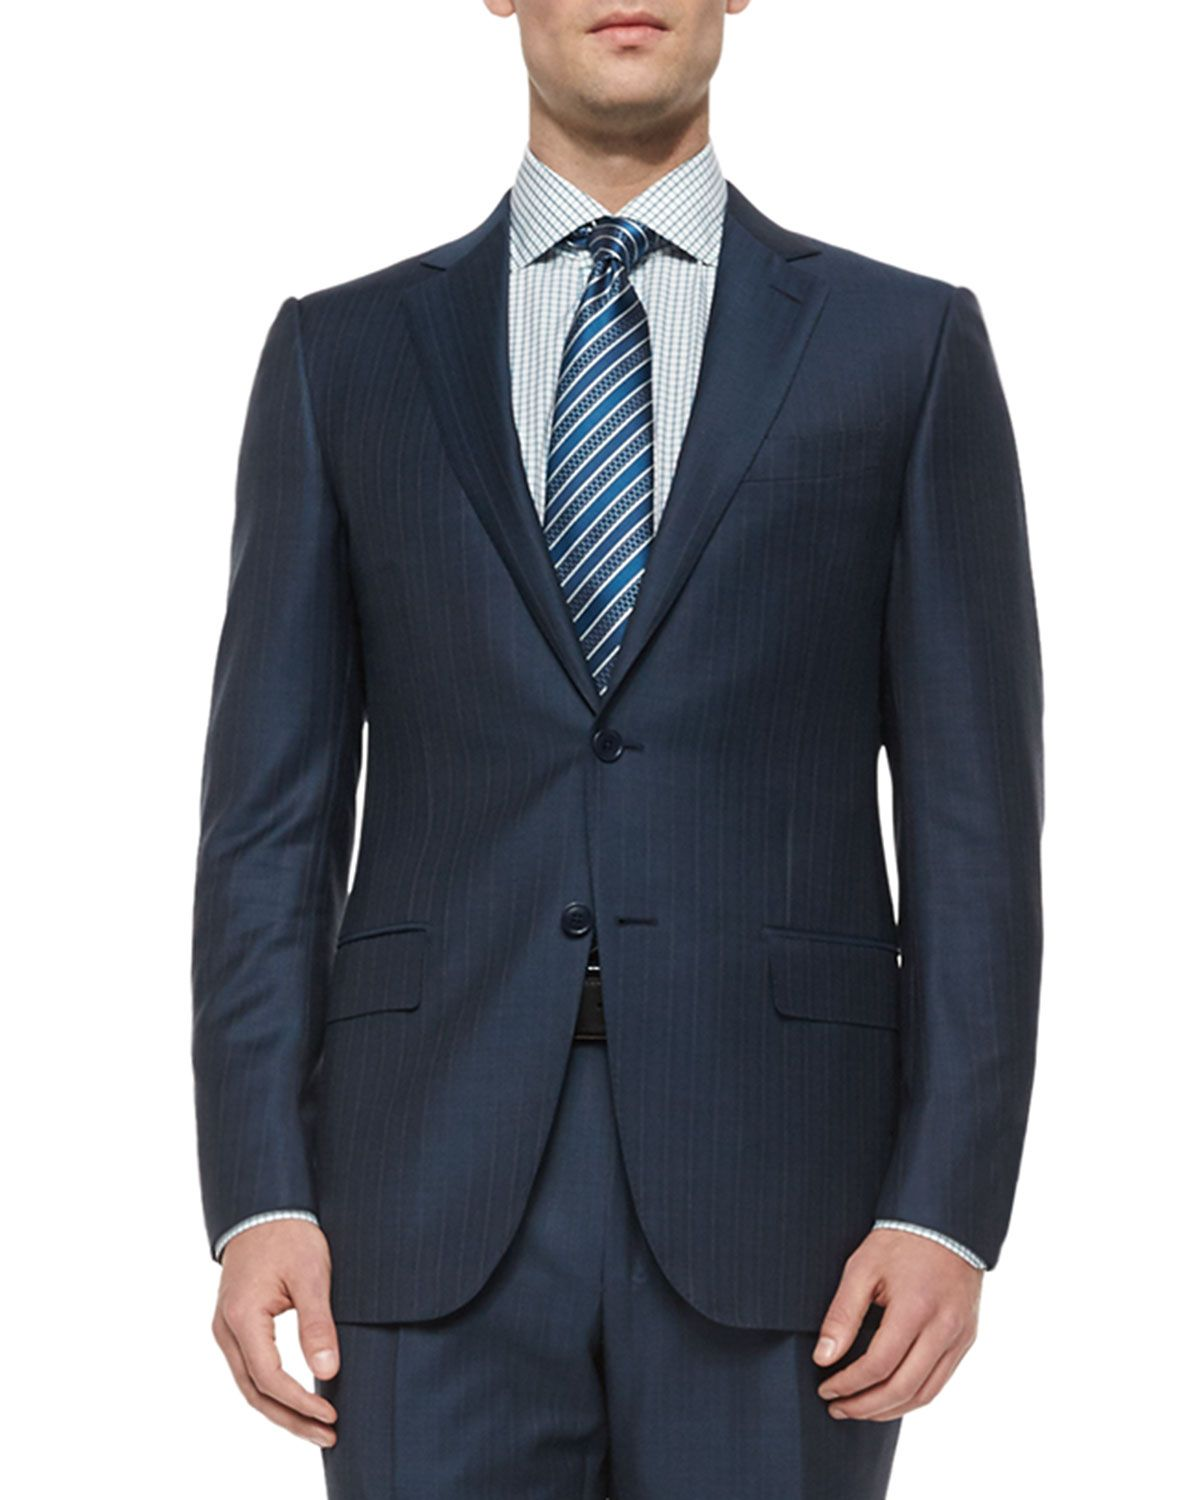 f38ded9f Trofeo Wool Striped Suit Steel Blue   *Suits > Pant Suits*   Suits ...